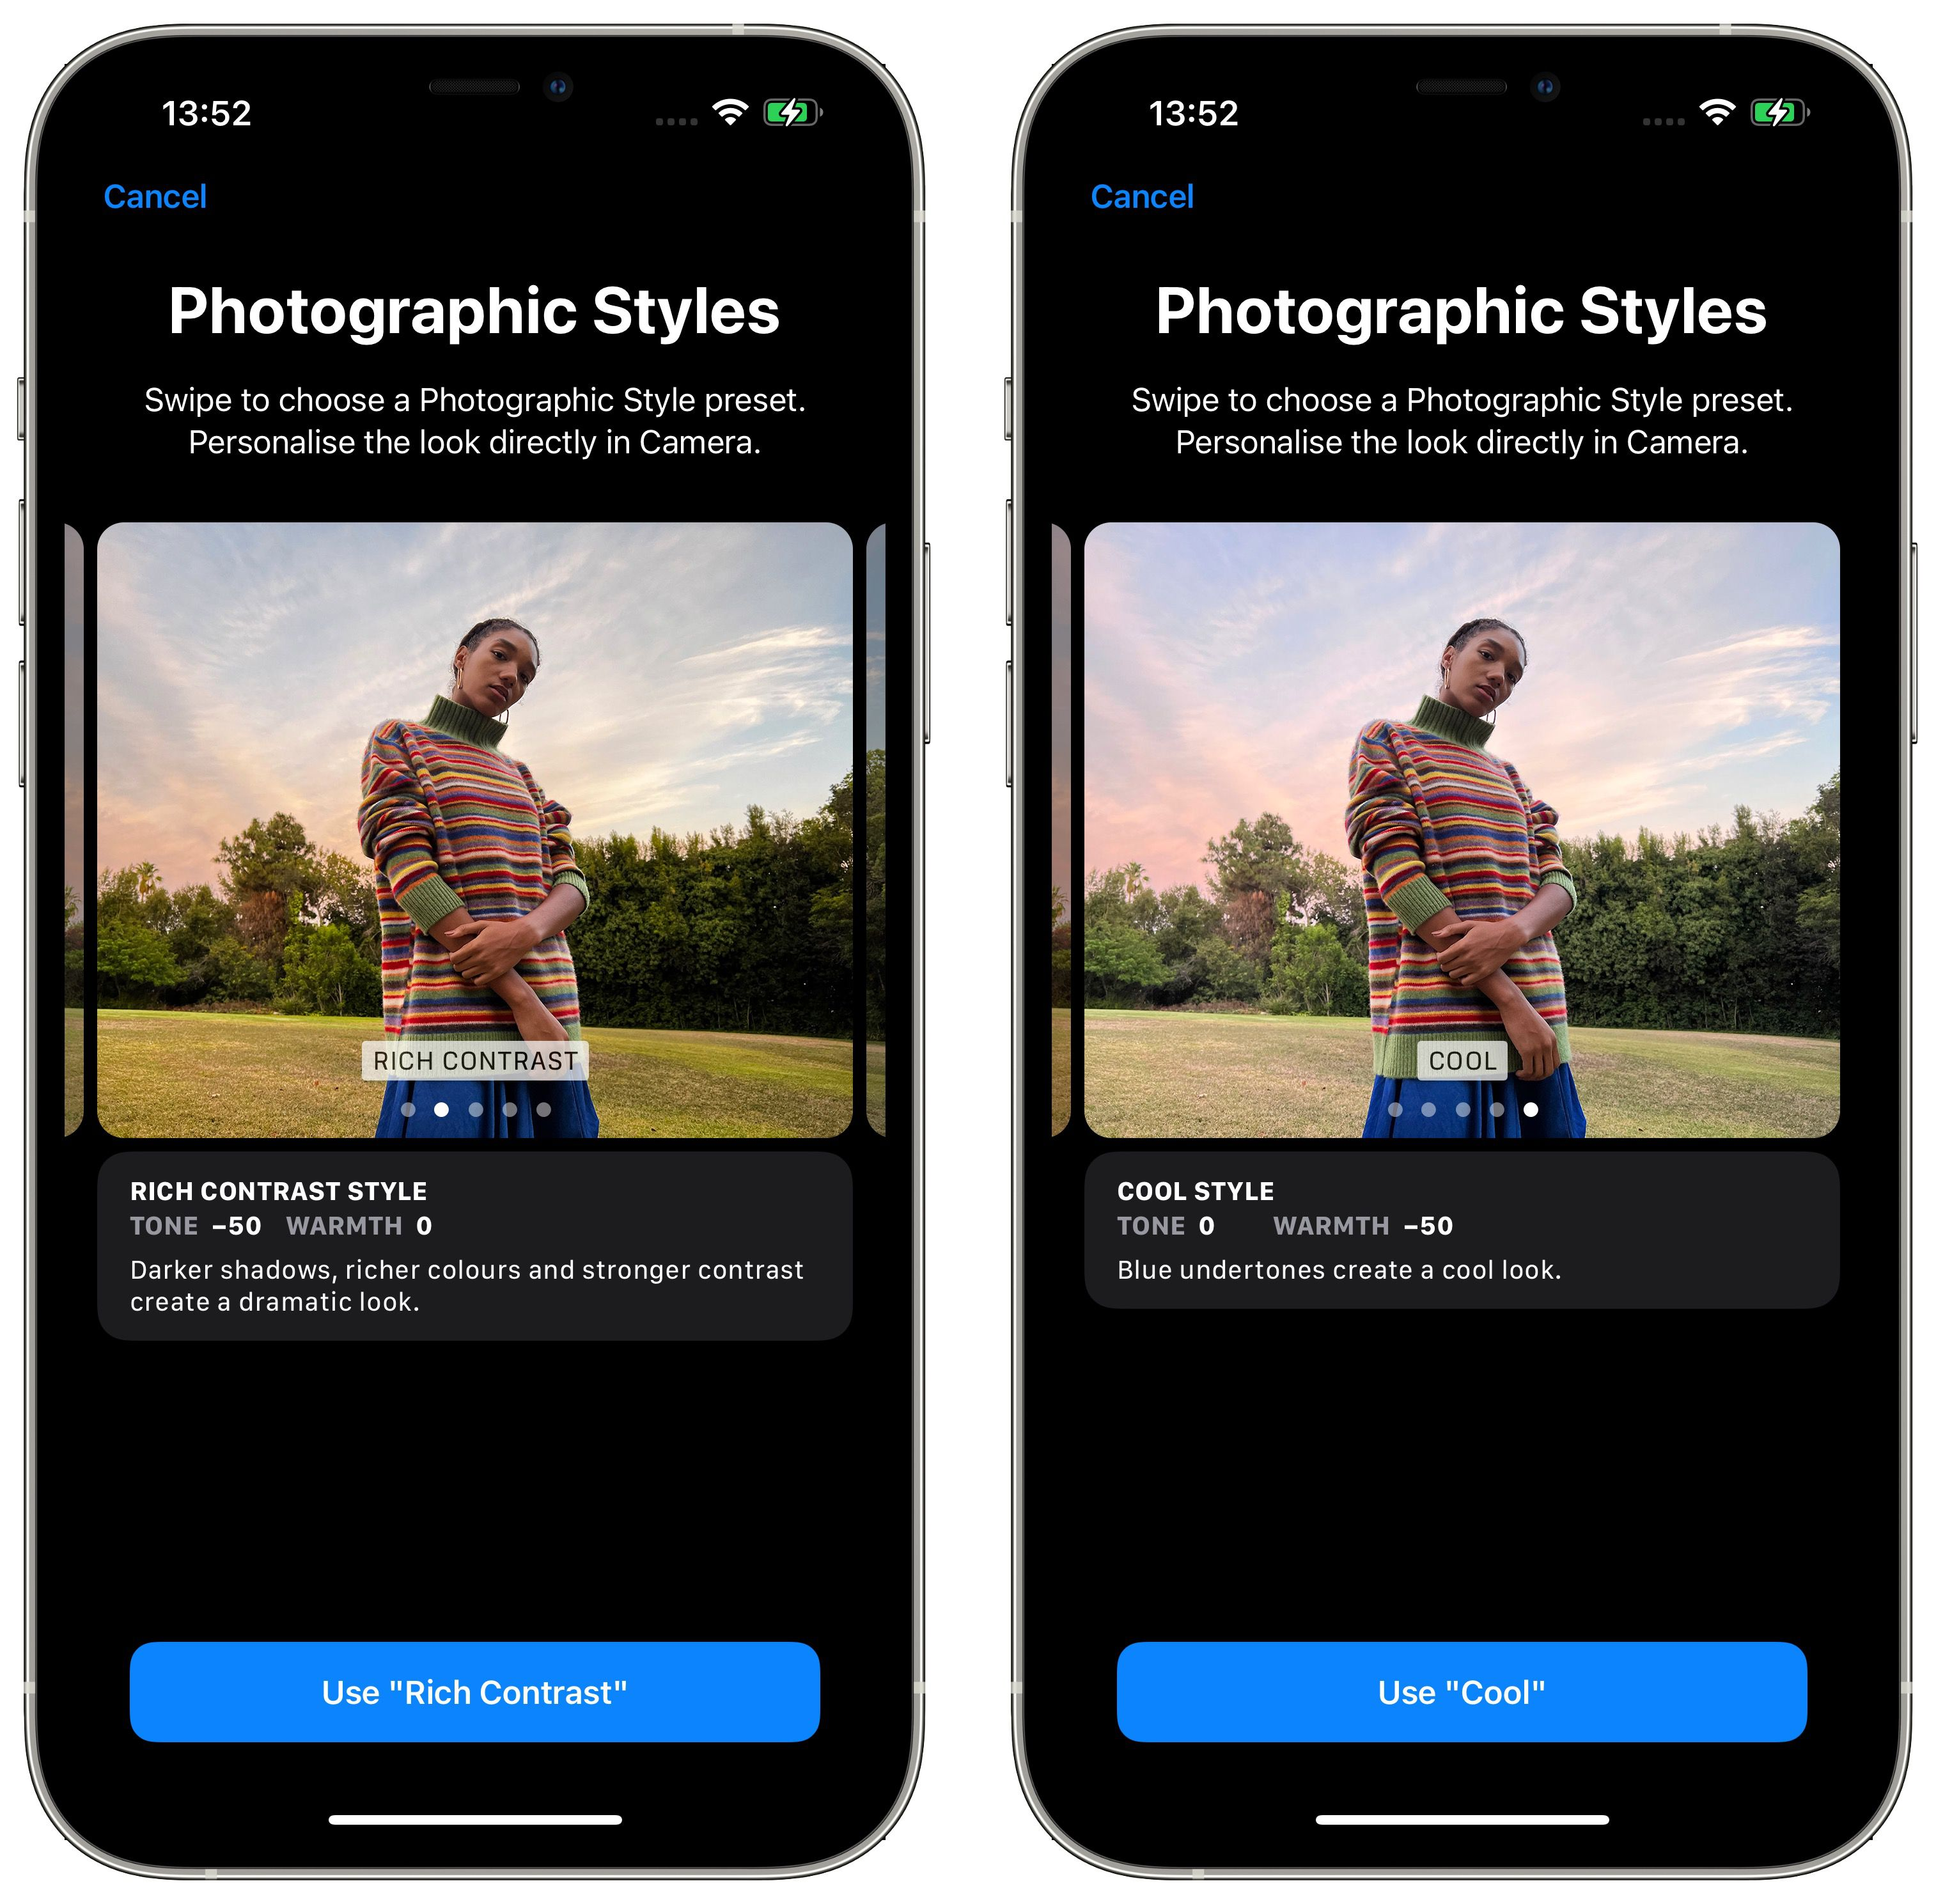 iPhone 13: How to Use Photographic Styles in the Camera App